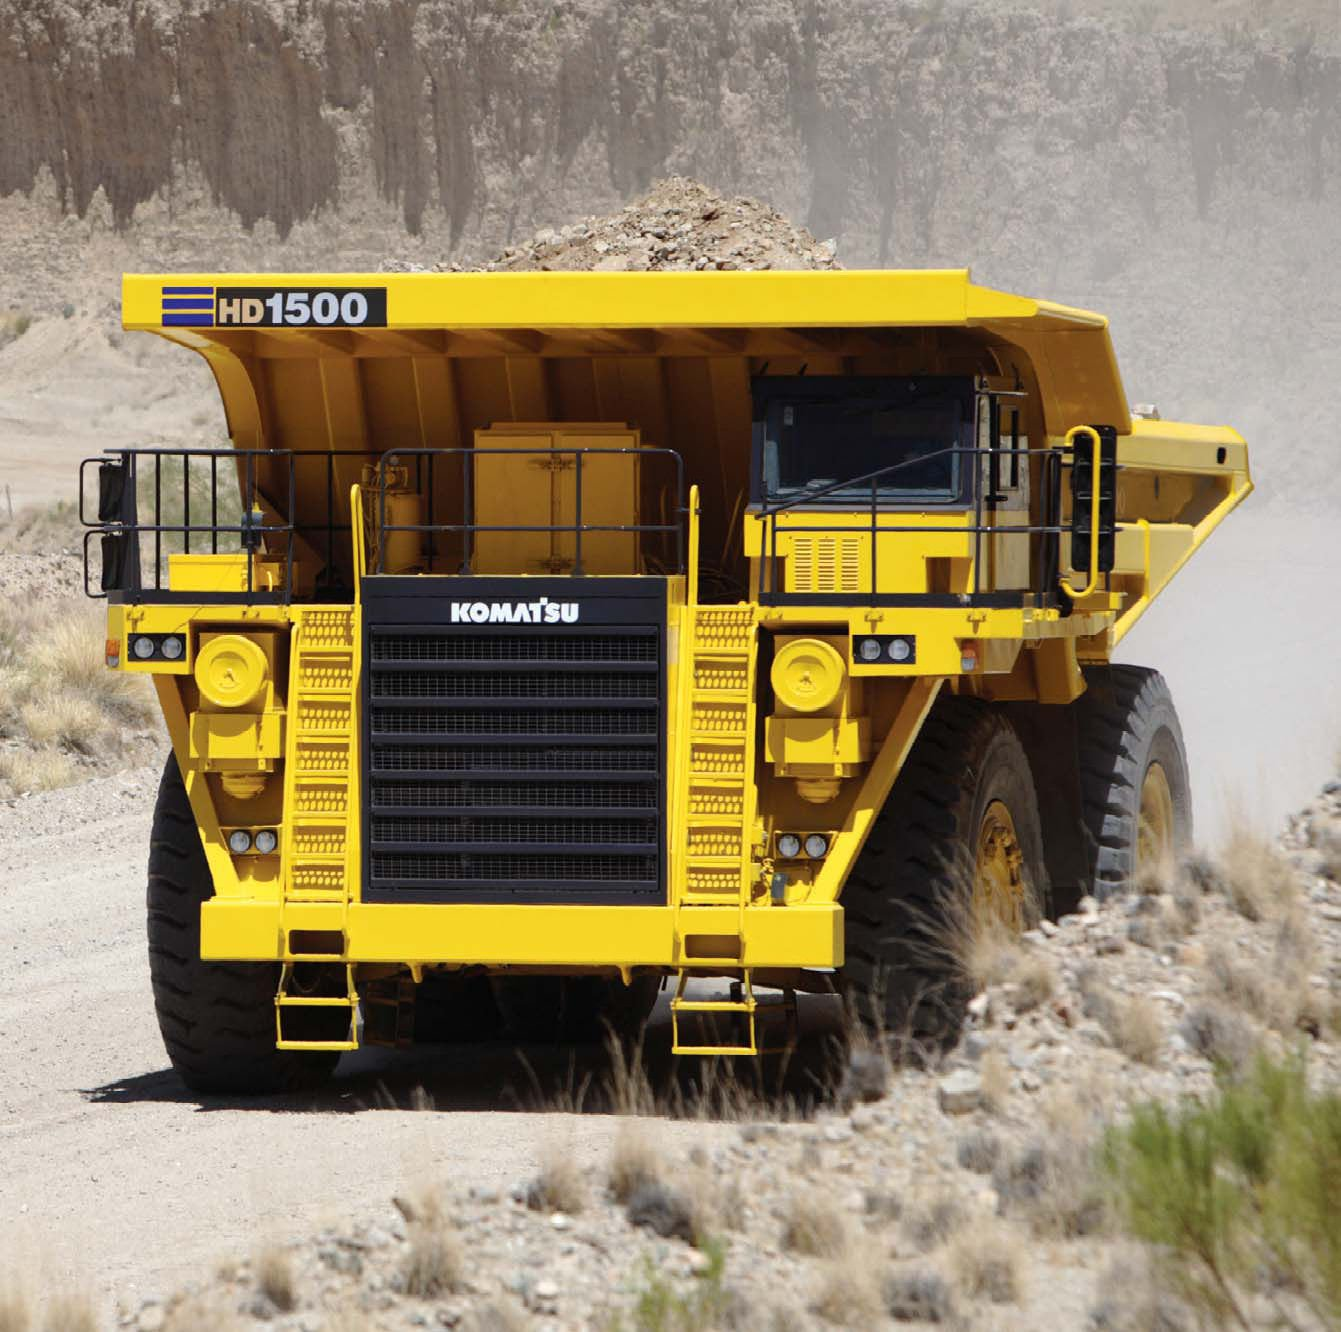 Komatsu And Ge Announced A Partnership That Will Provide Data Ysis To Mining Customers